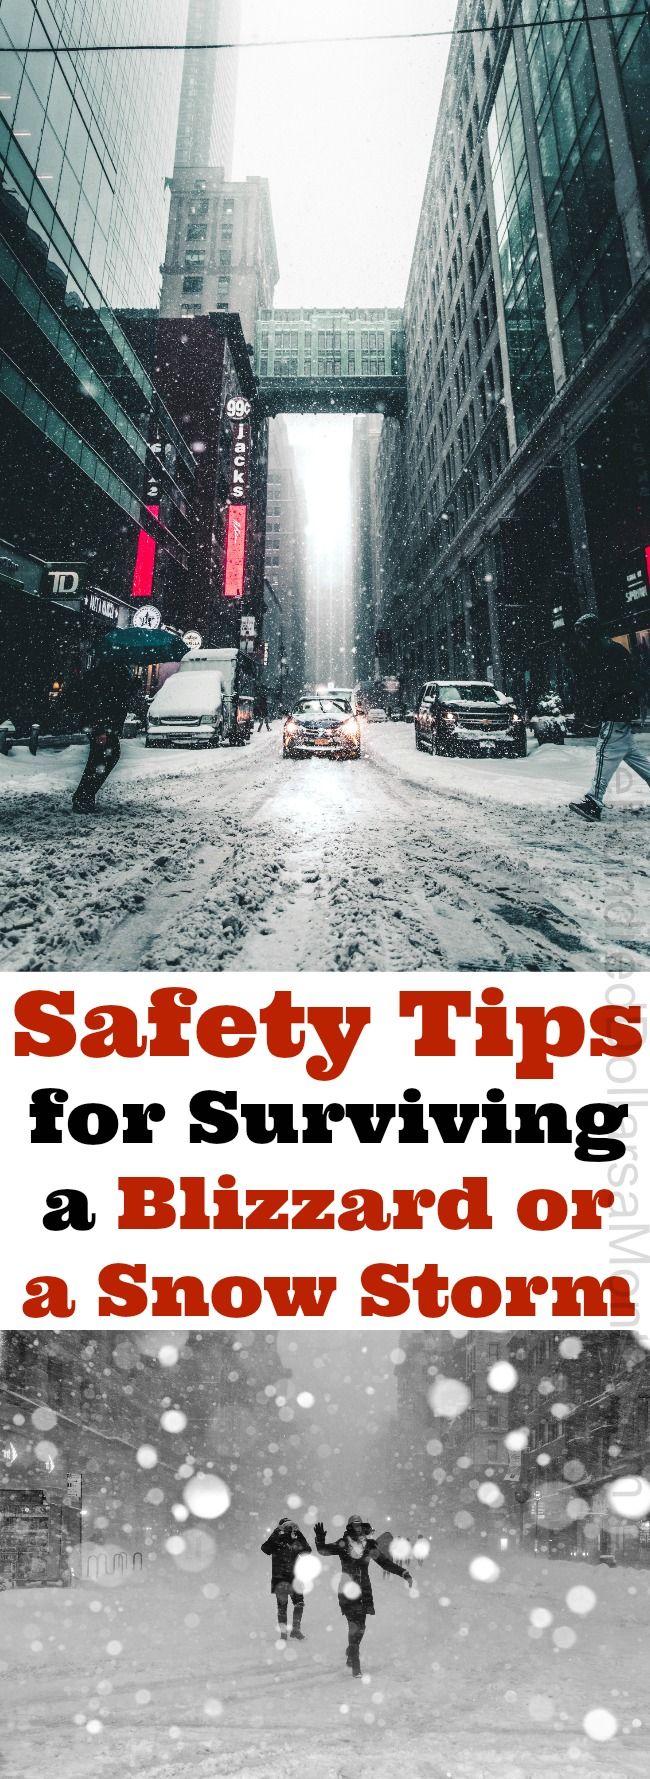 Safety Tips for Surviving a Blizzard or a Snow Storm